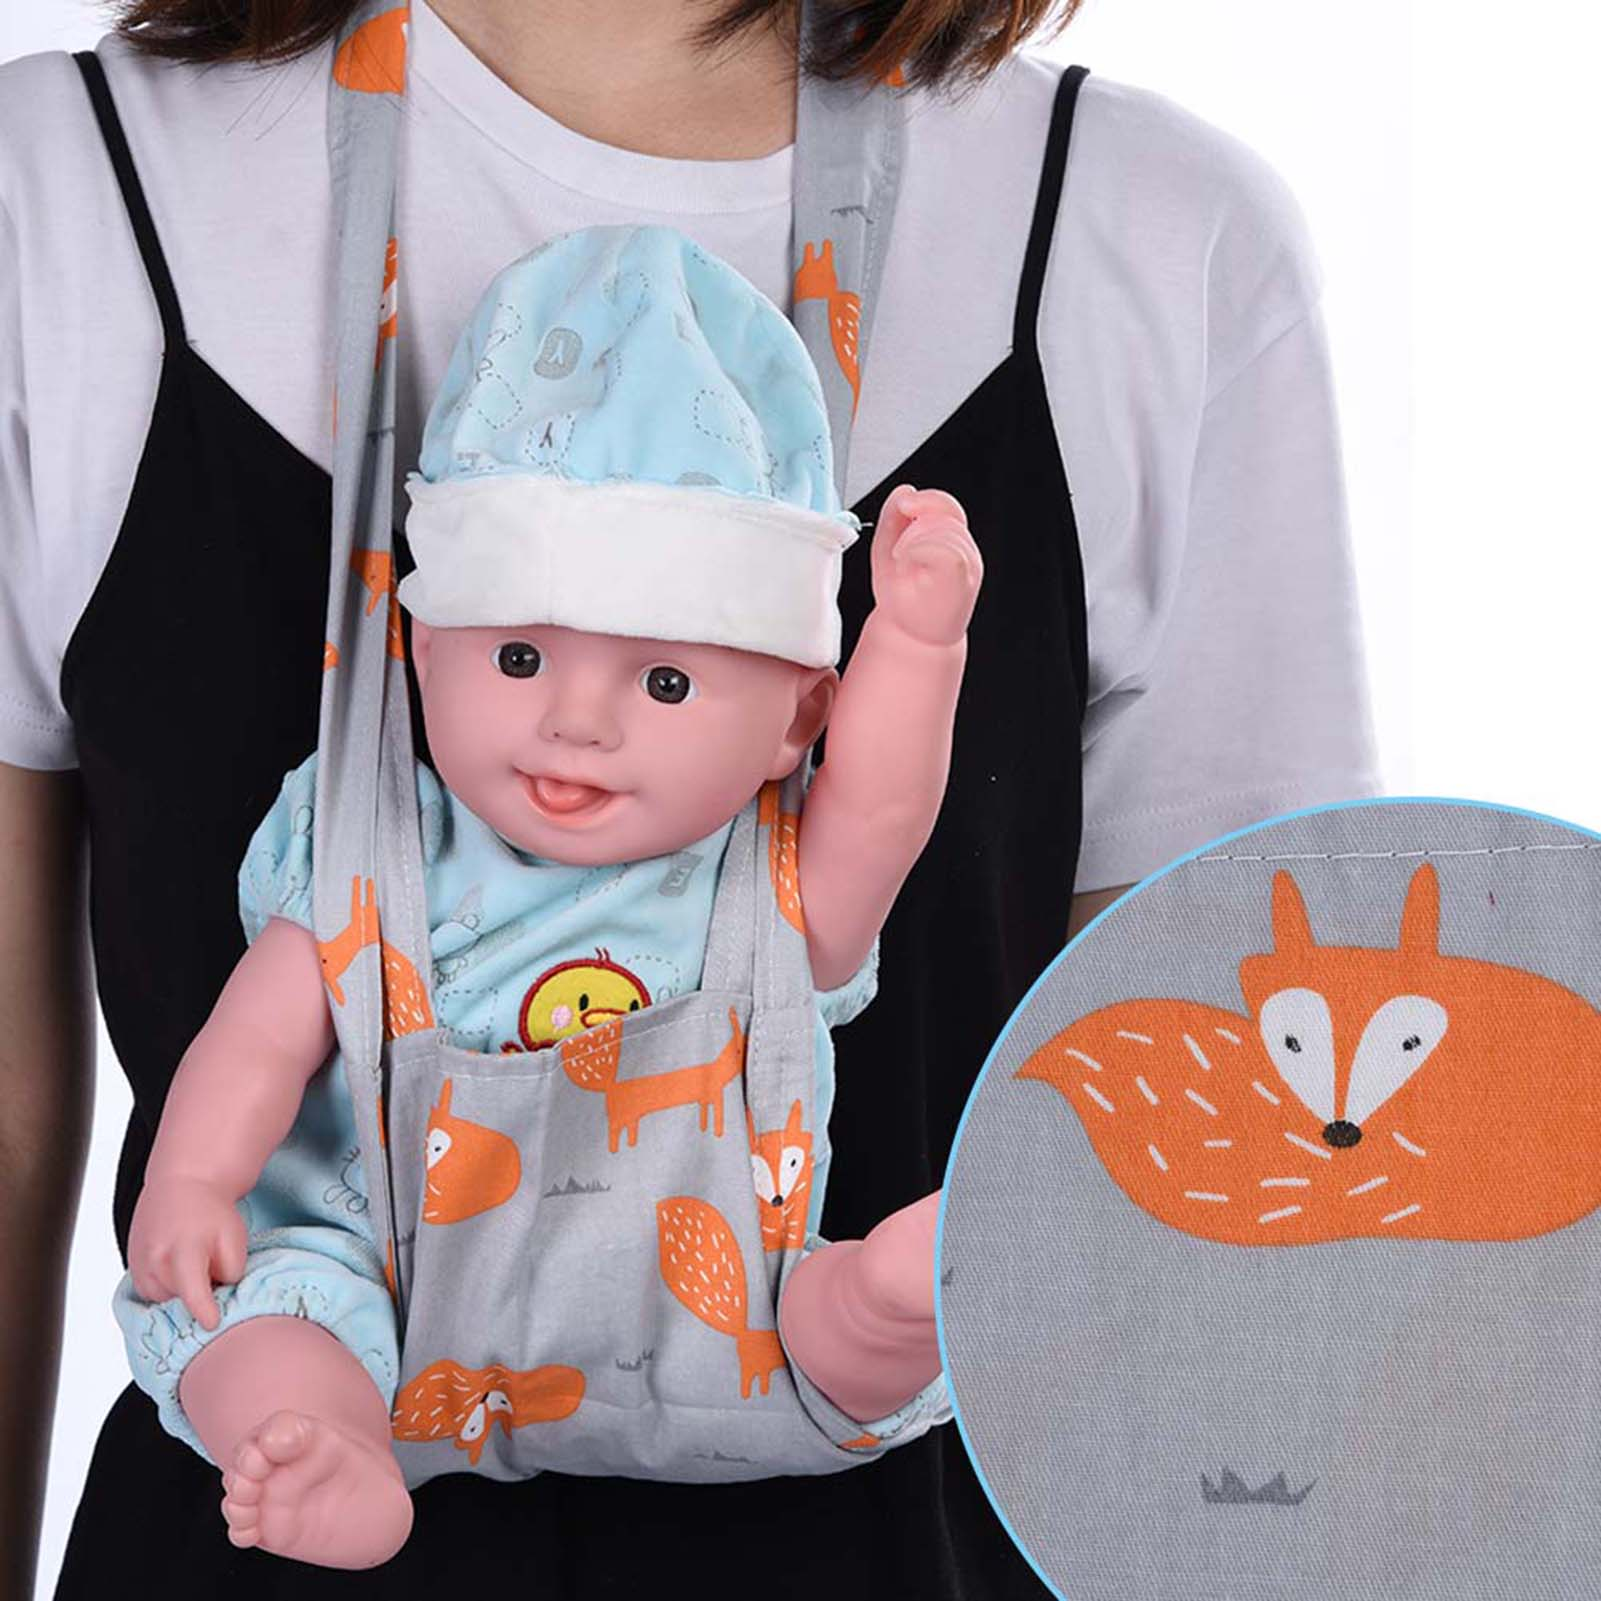 Baby-Doll-Carrier-Shoulder-Sling-Toy-Kids-Toddler-Front-Back-Christmas-Birthday